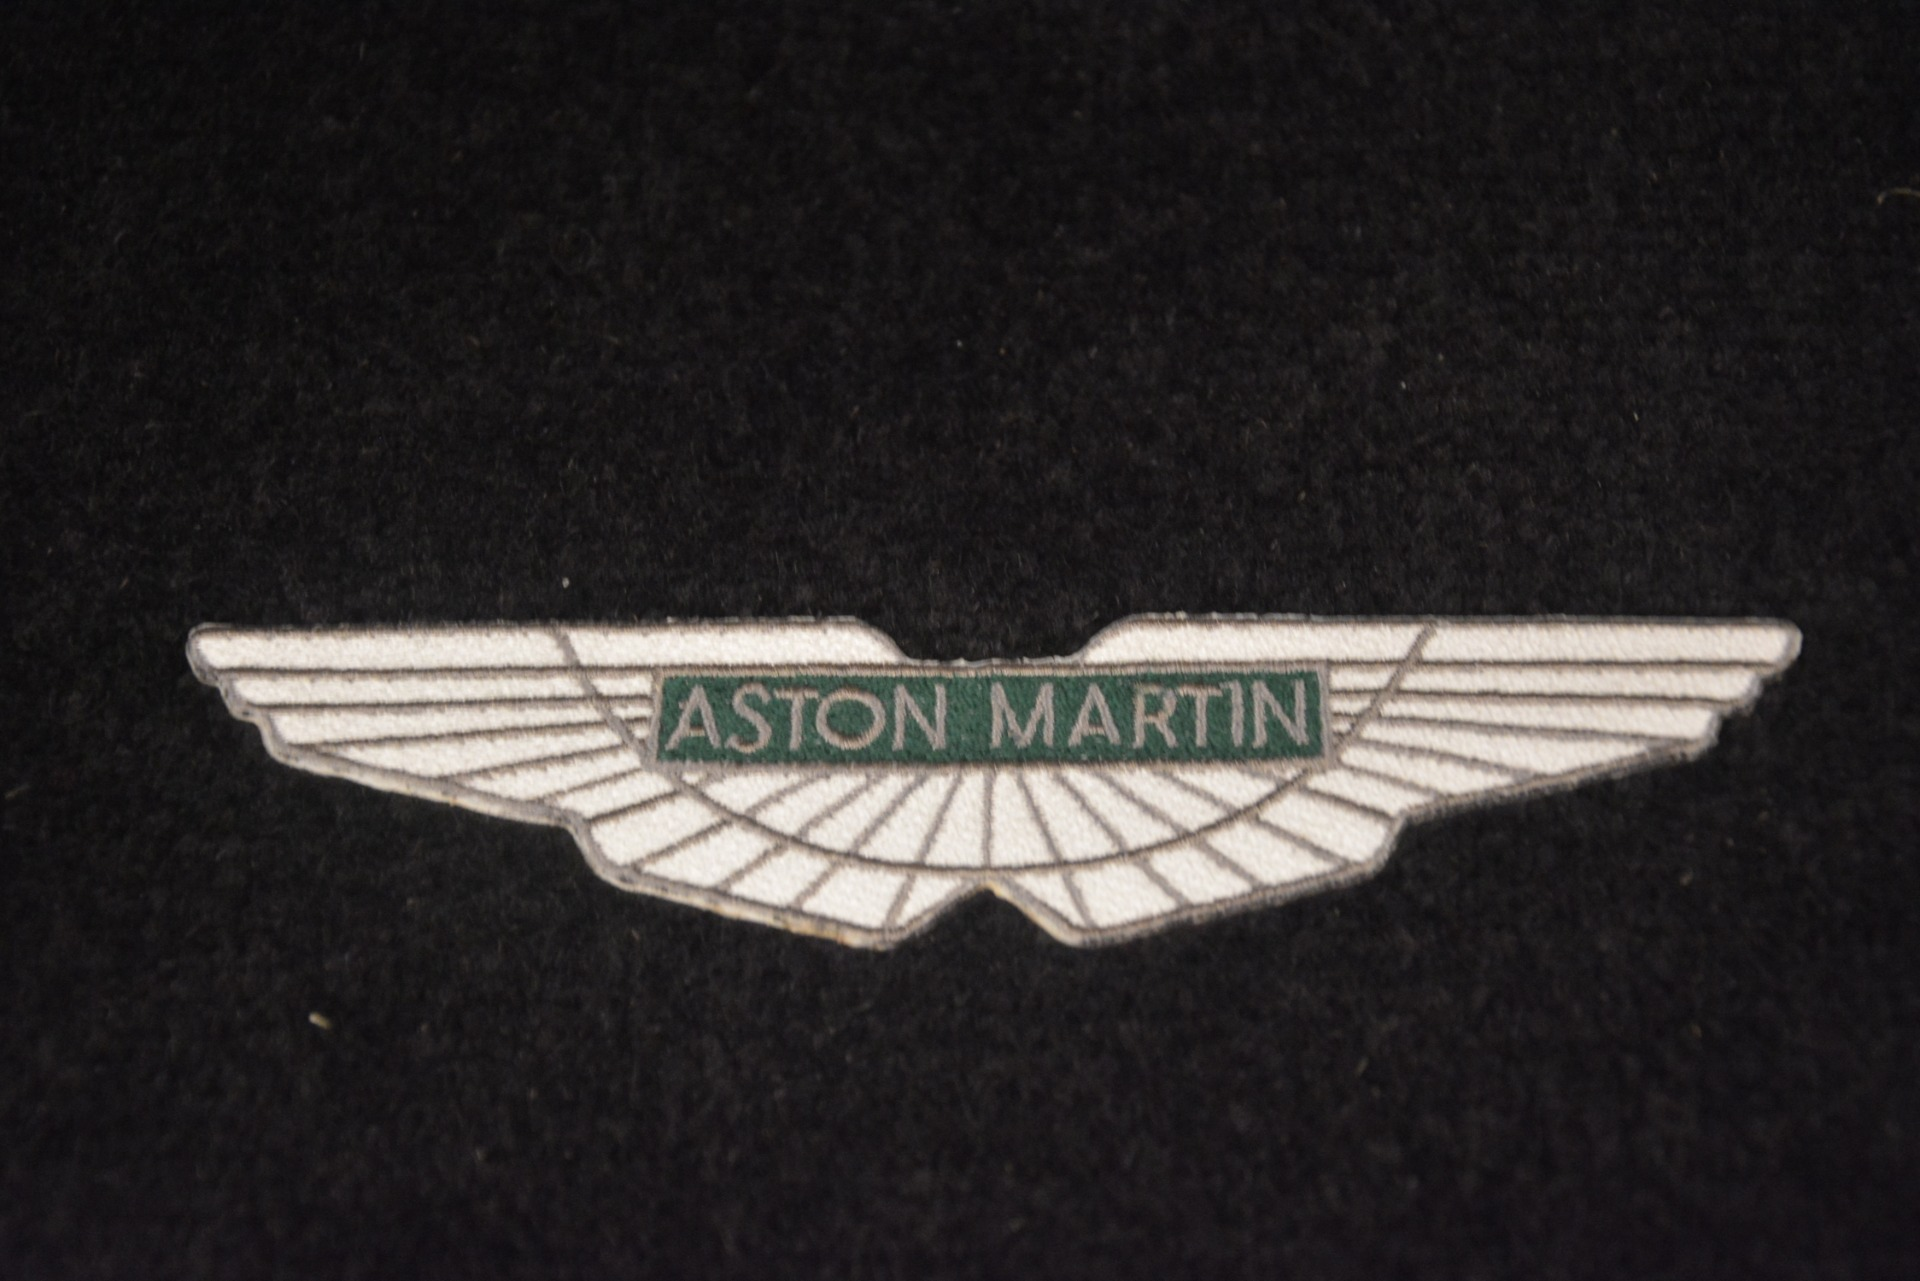 Used 2004 Aston Martin V12 Vanquish  For Sale In Greenwich, CT 3160_p23